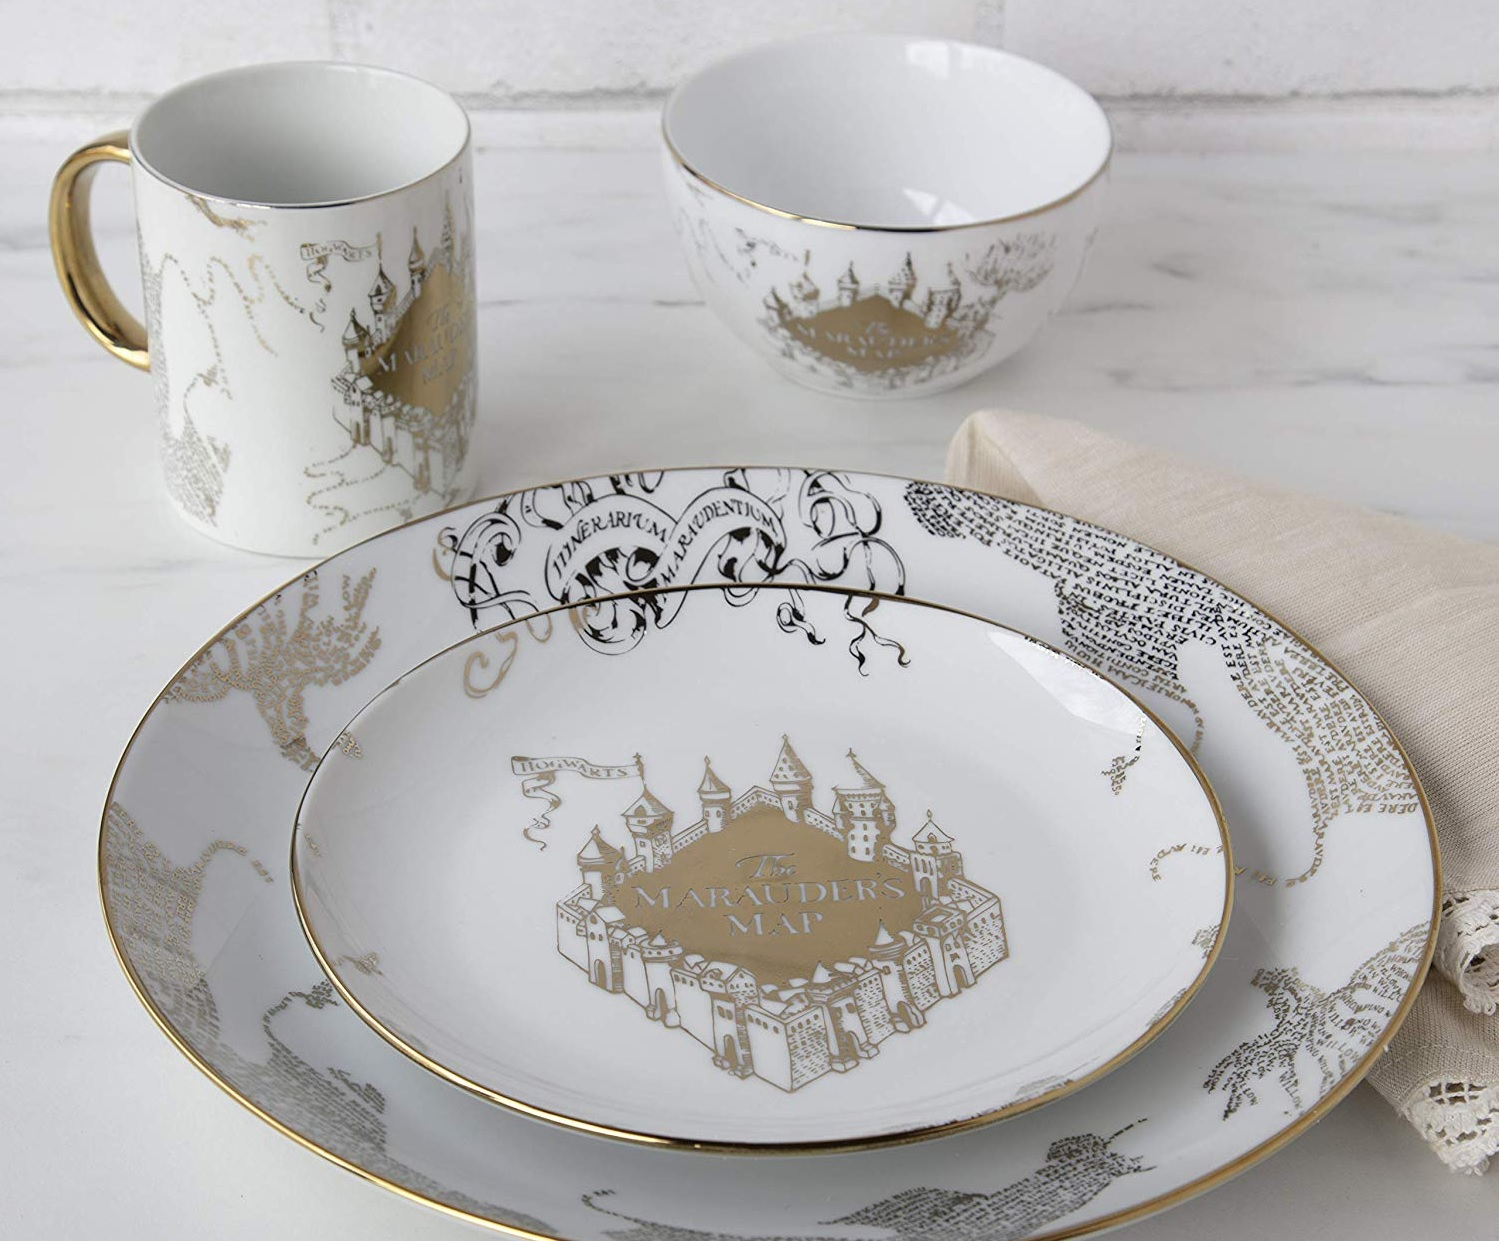 These Harry Potter Marauder's Map dinner sets will make for one magical dinner party—and they're only $30 on Amazon